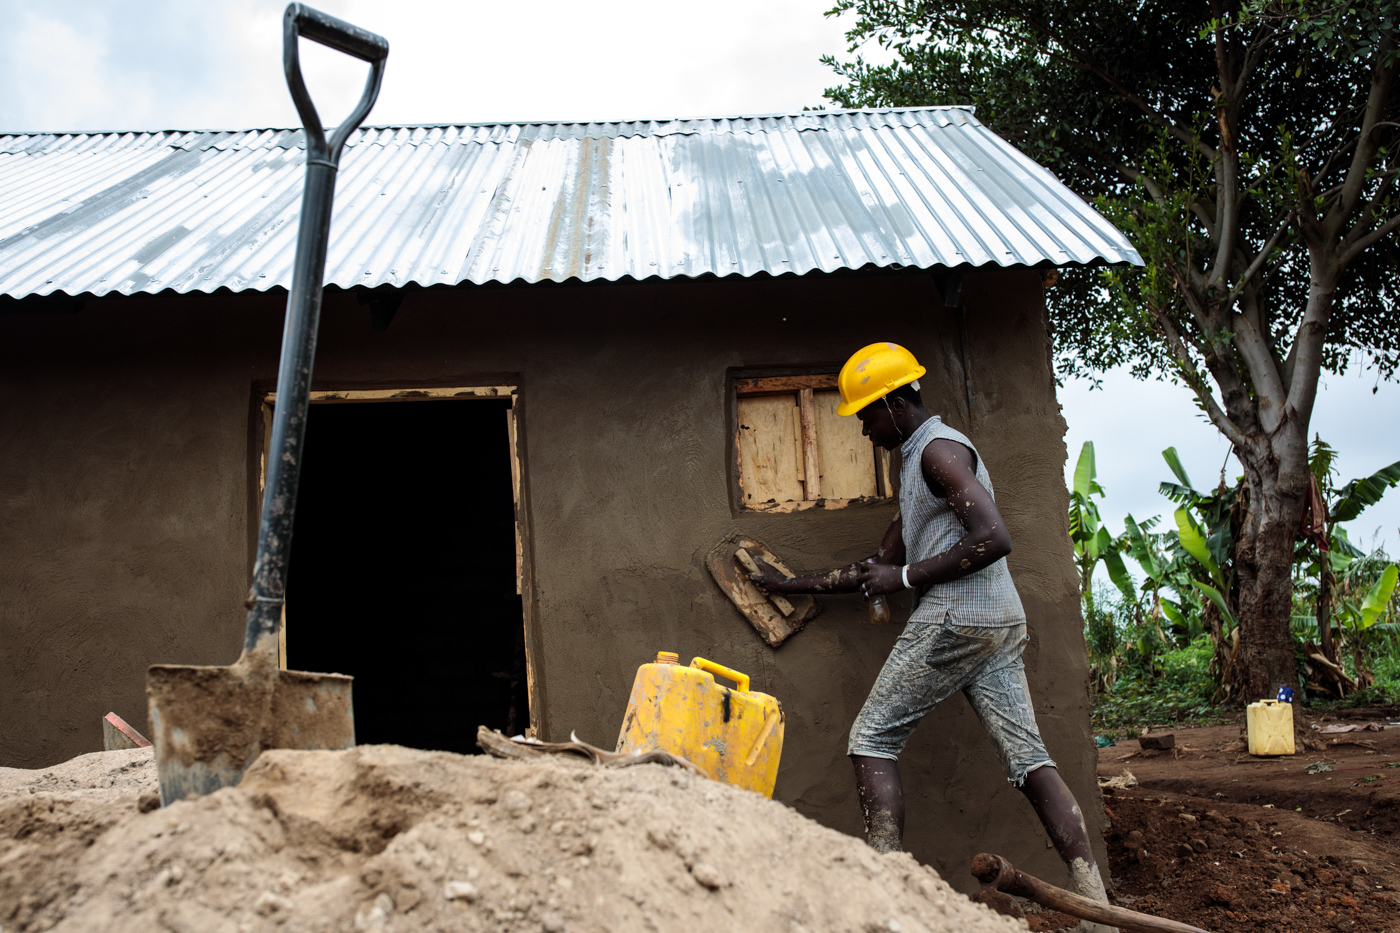 KYANGWALI, UGANDA: A young refugee from the Democratic Republic of Congo builds a shelter in the Kyangwali Refugee Settlement on April 3, 2018.